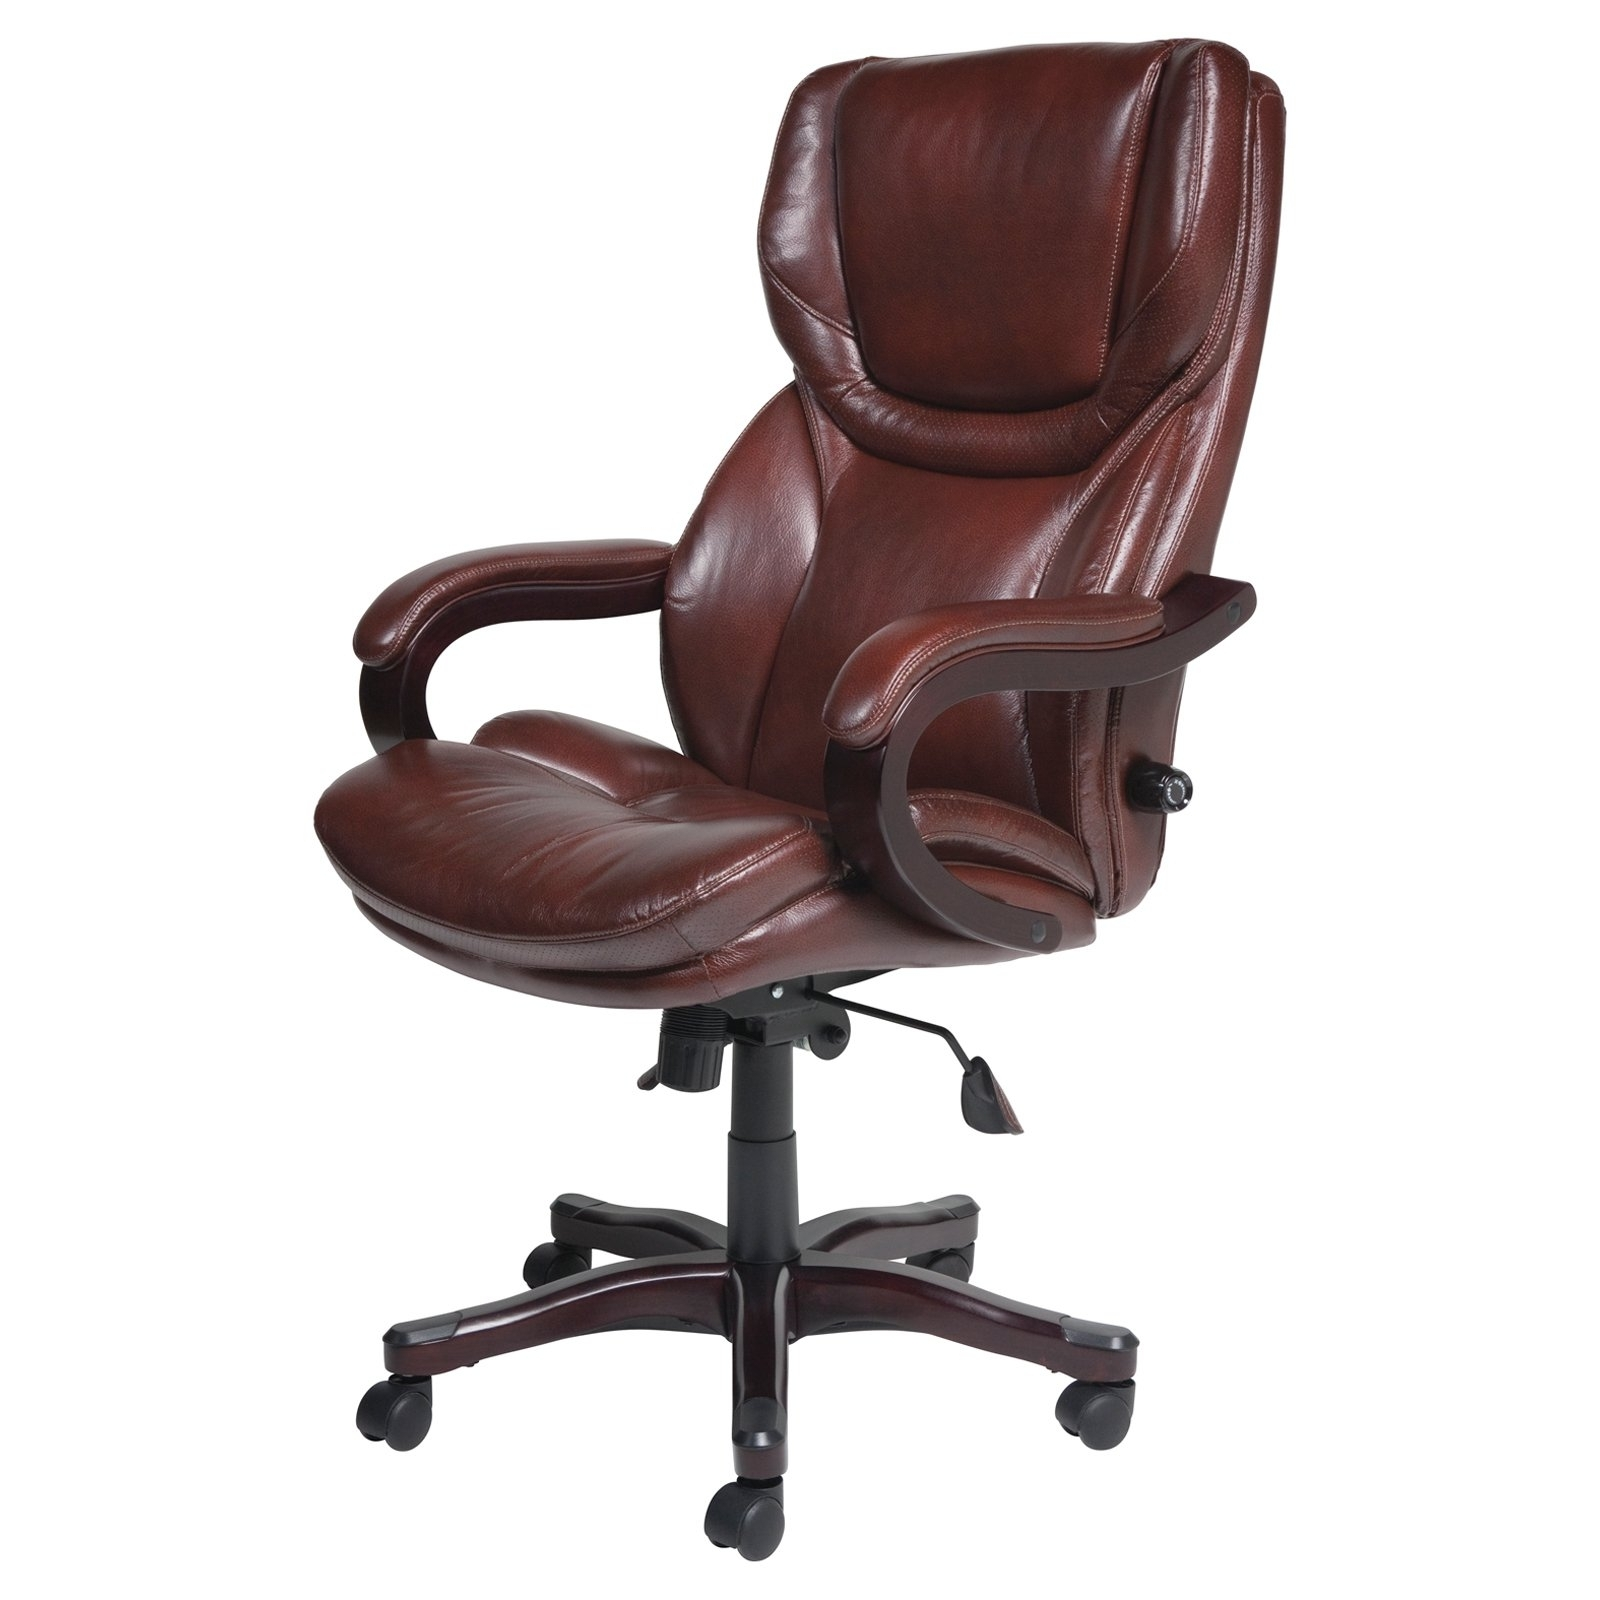 Most Recent Leather Executive Office Chairs For Chair : Ergonomic Black Leather Executive Office Chair Verona (View 13 of 20)